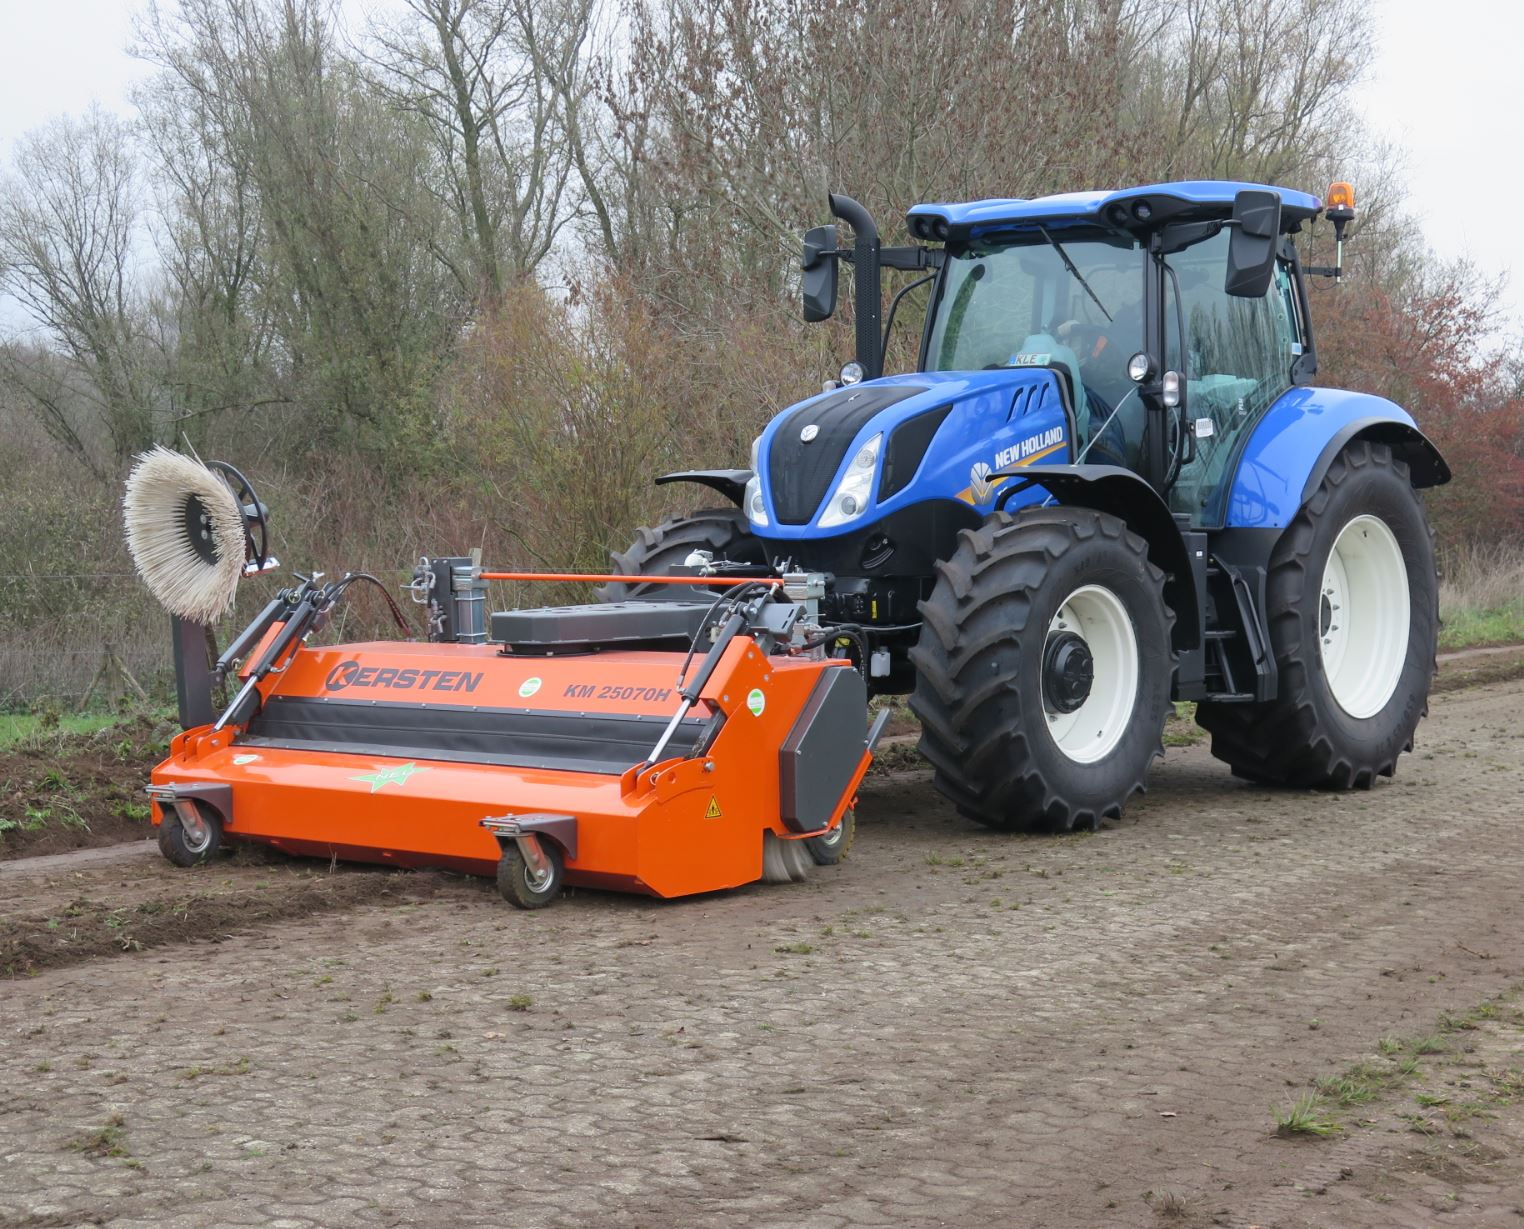 Kersten UK Tractor Attachments - Cover Image